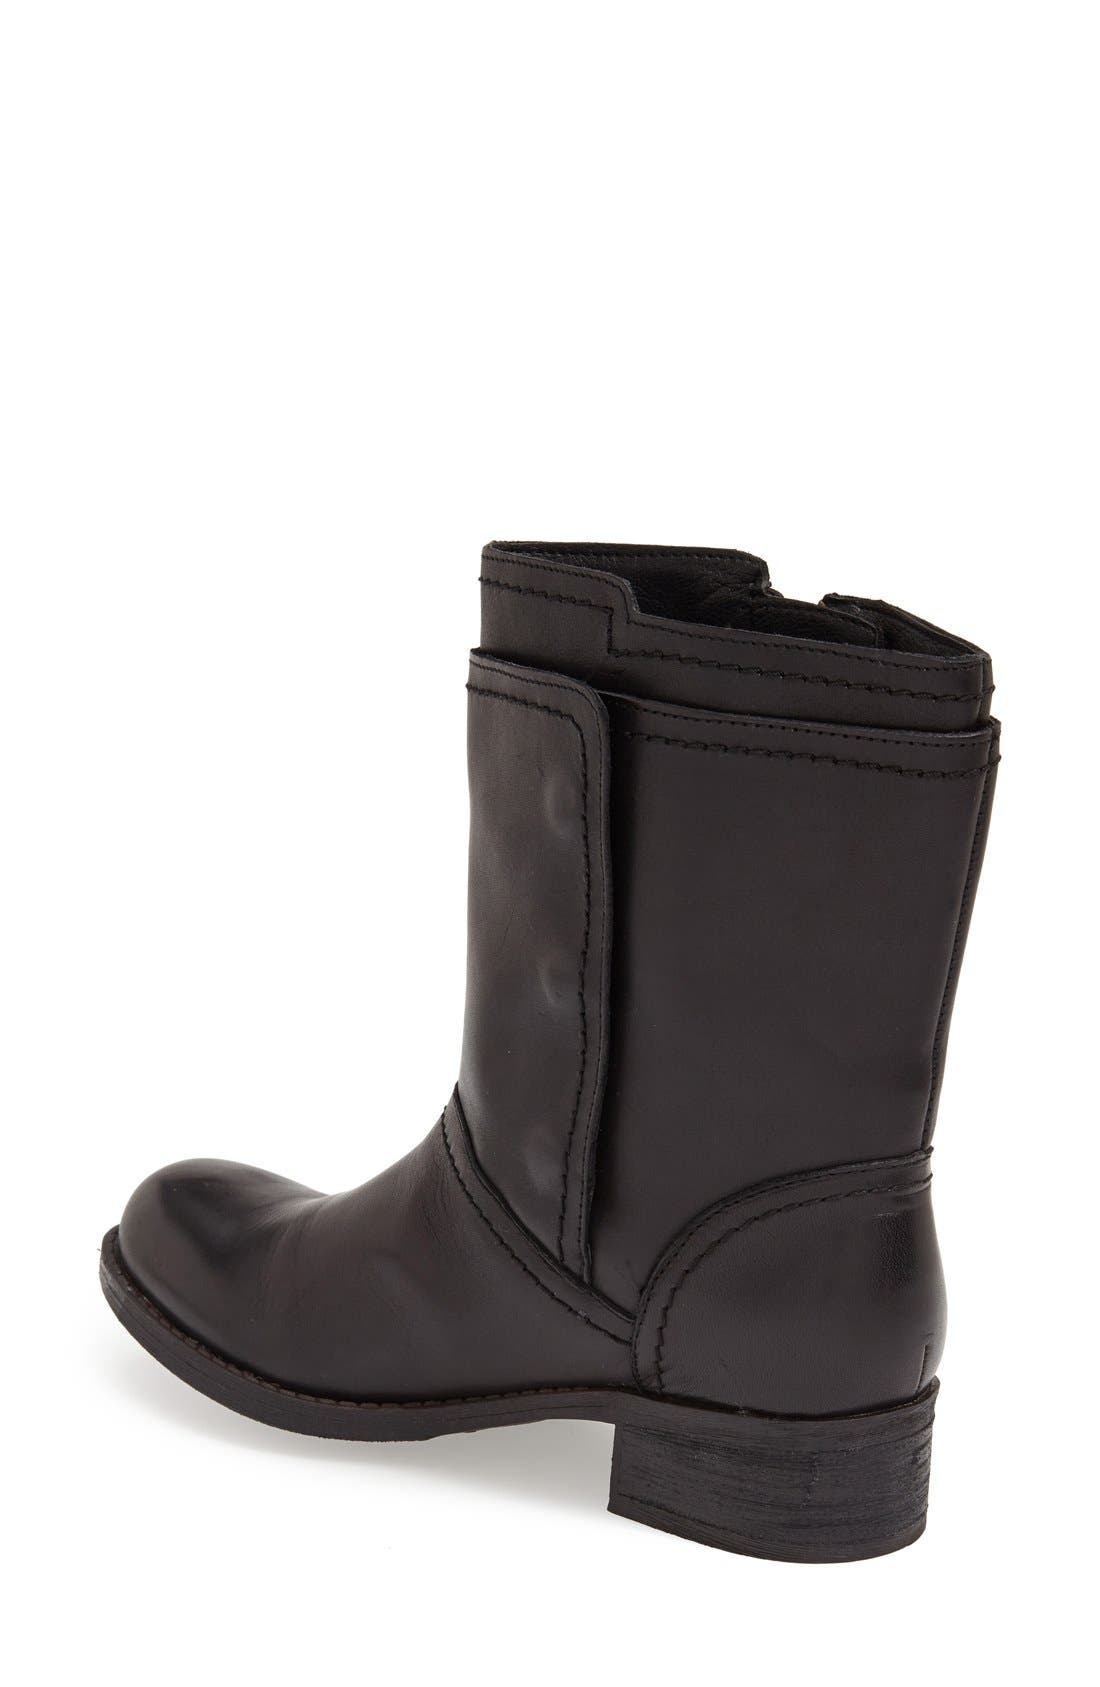 Alternate Image 2  - BCBGeneration 'Everest' Leather Boot (Women)